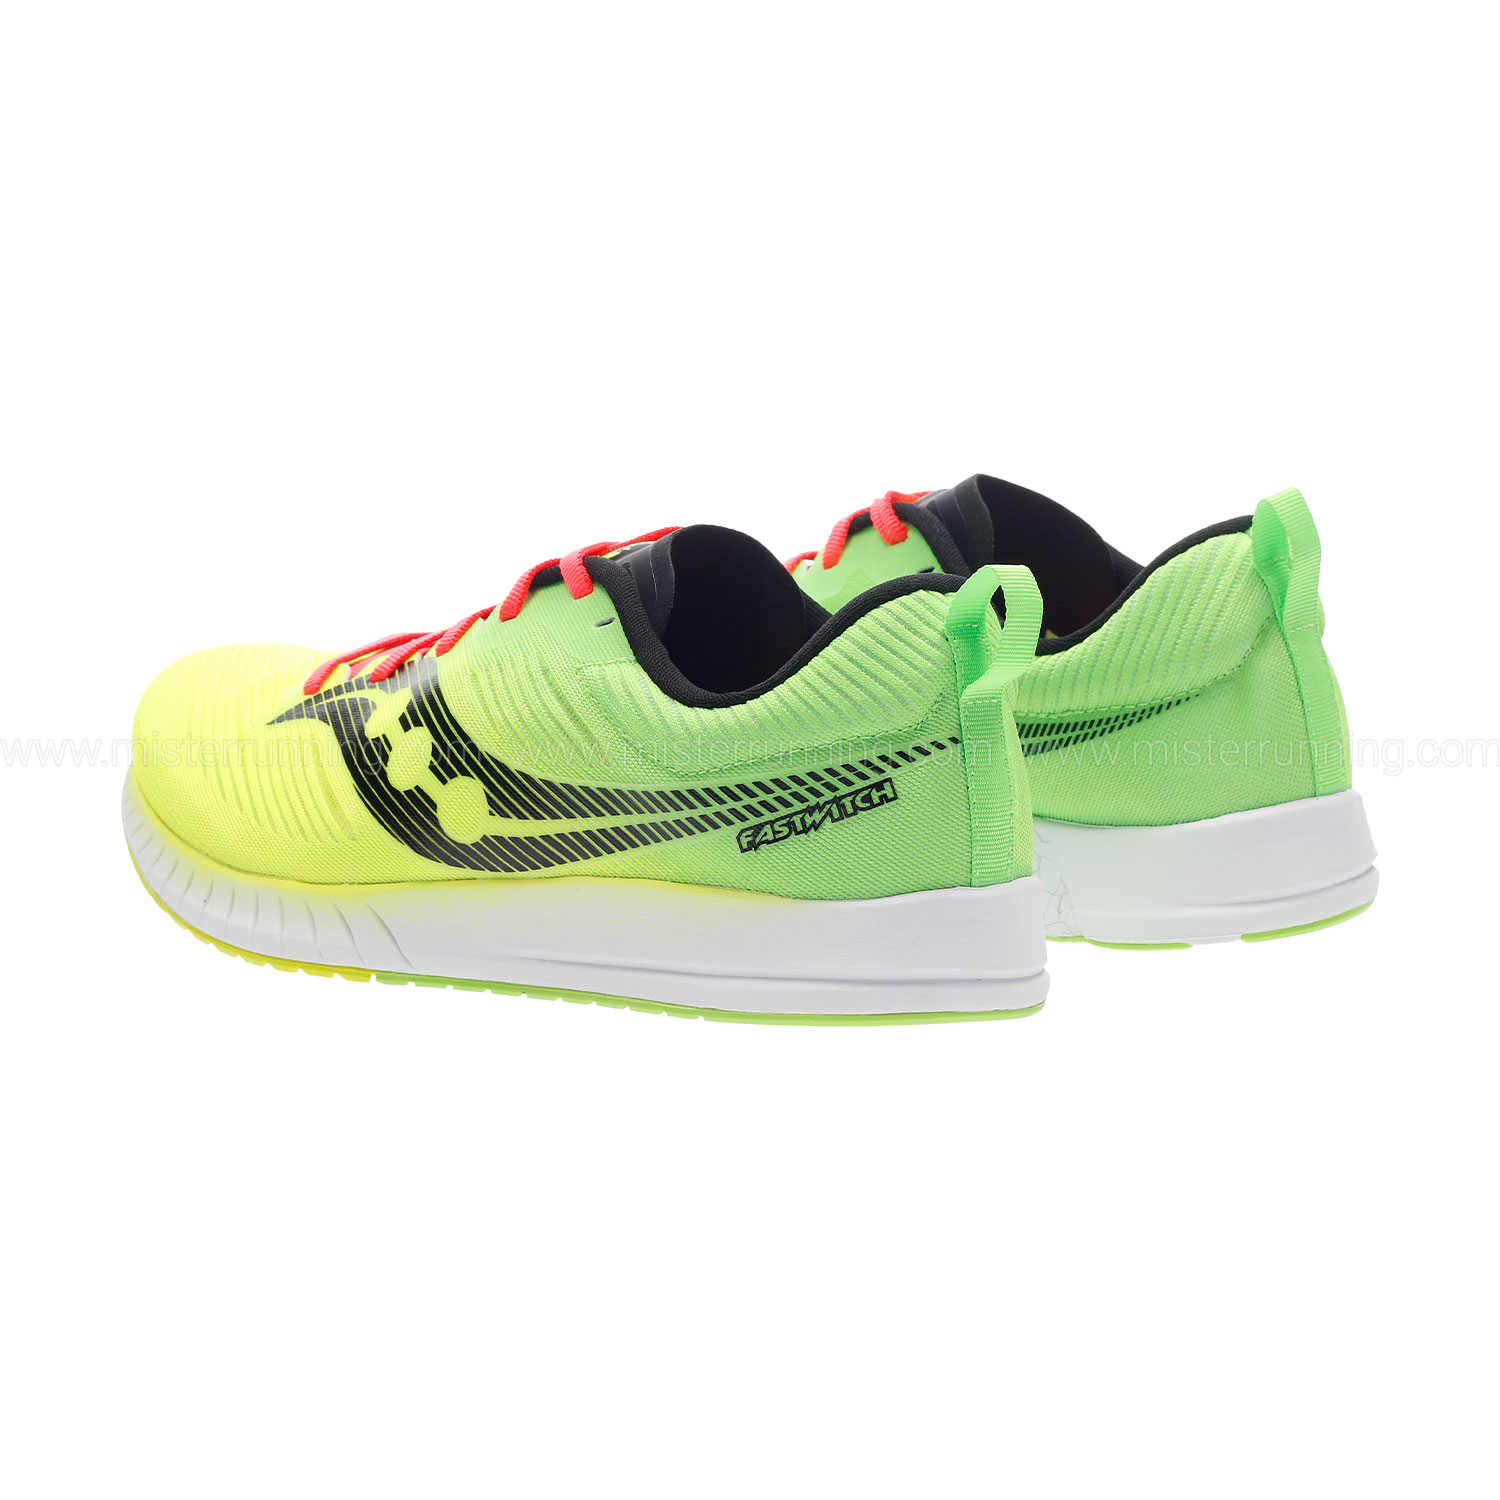 Saucony Fastwitch 9 Running Shoes Mens 29053 1